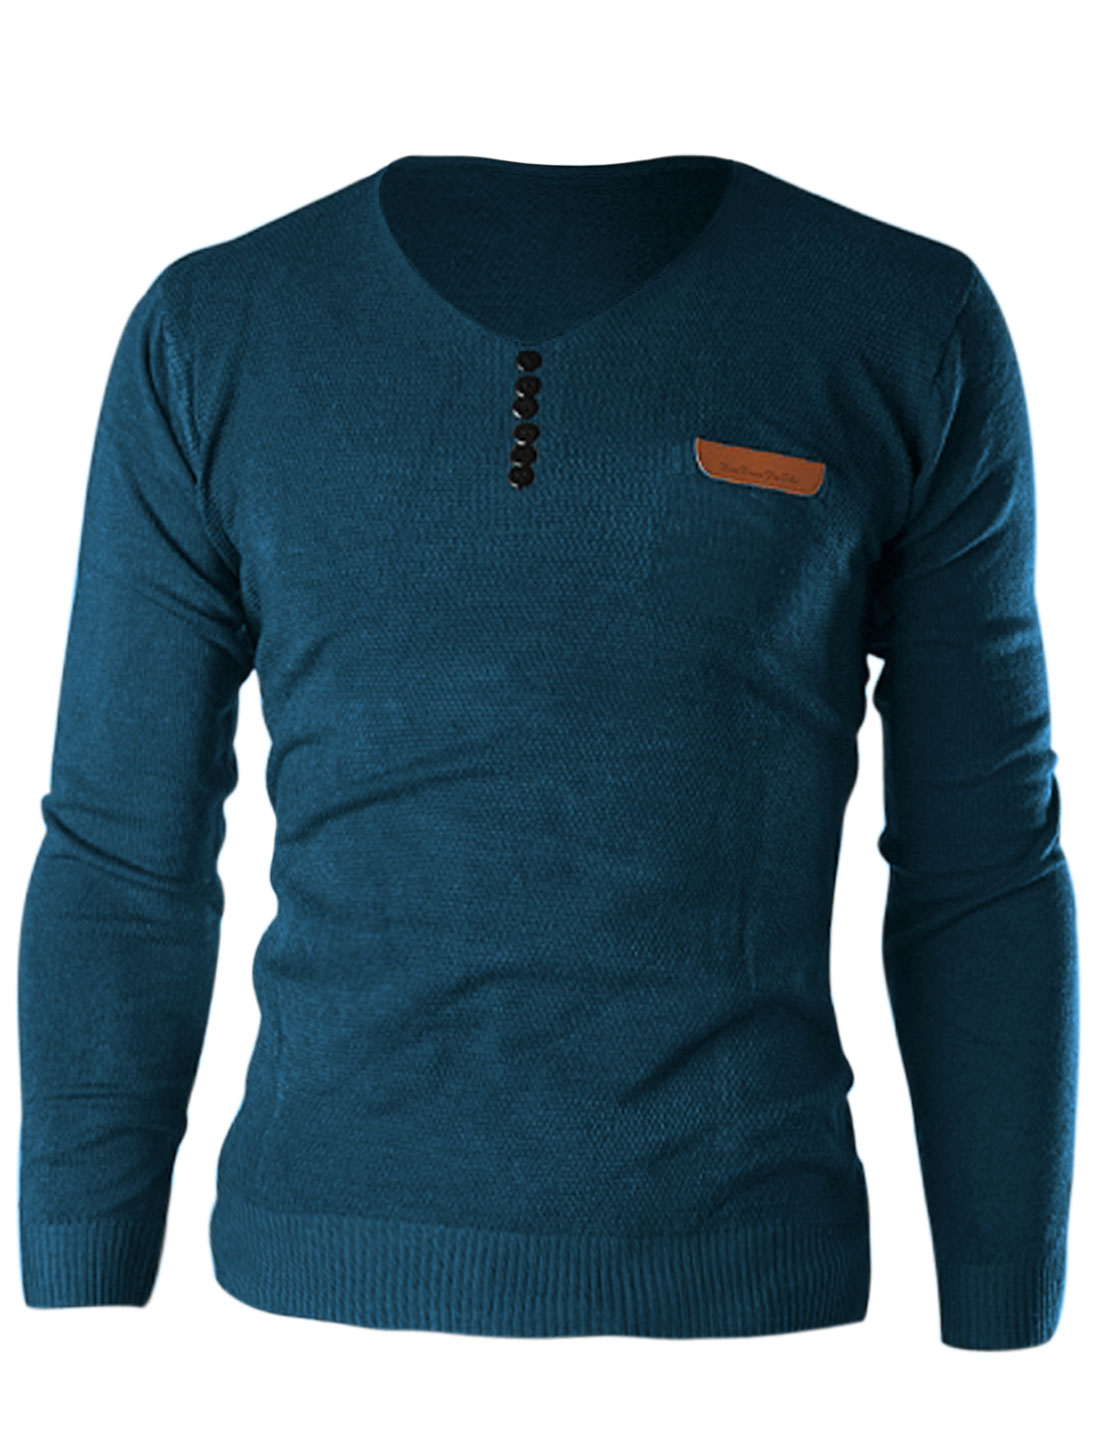 Men V Neck Fashionable Cozy Fit Knit Shirt Turquoise M